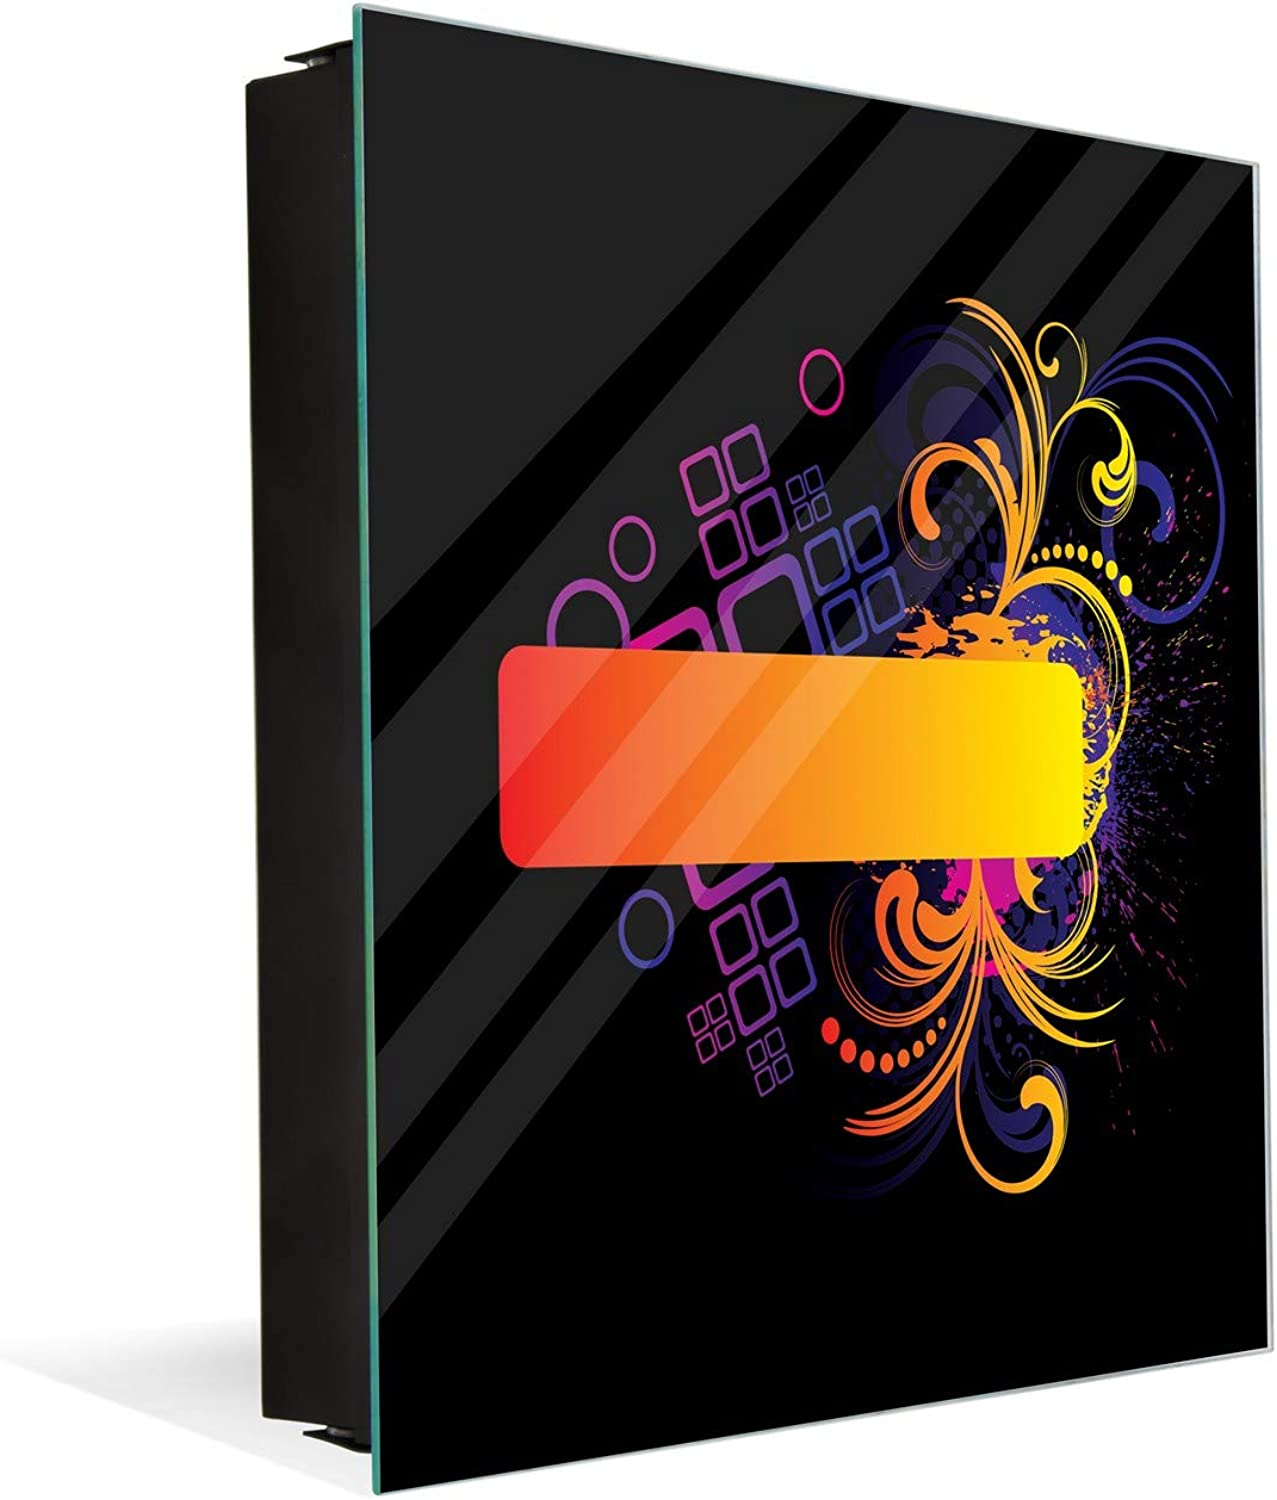 50 Keys Cabinet and Dry Erase Board in ONE K01 colorful Grunge